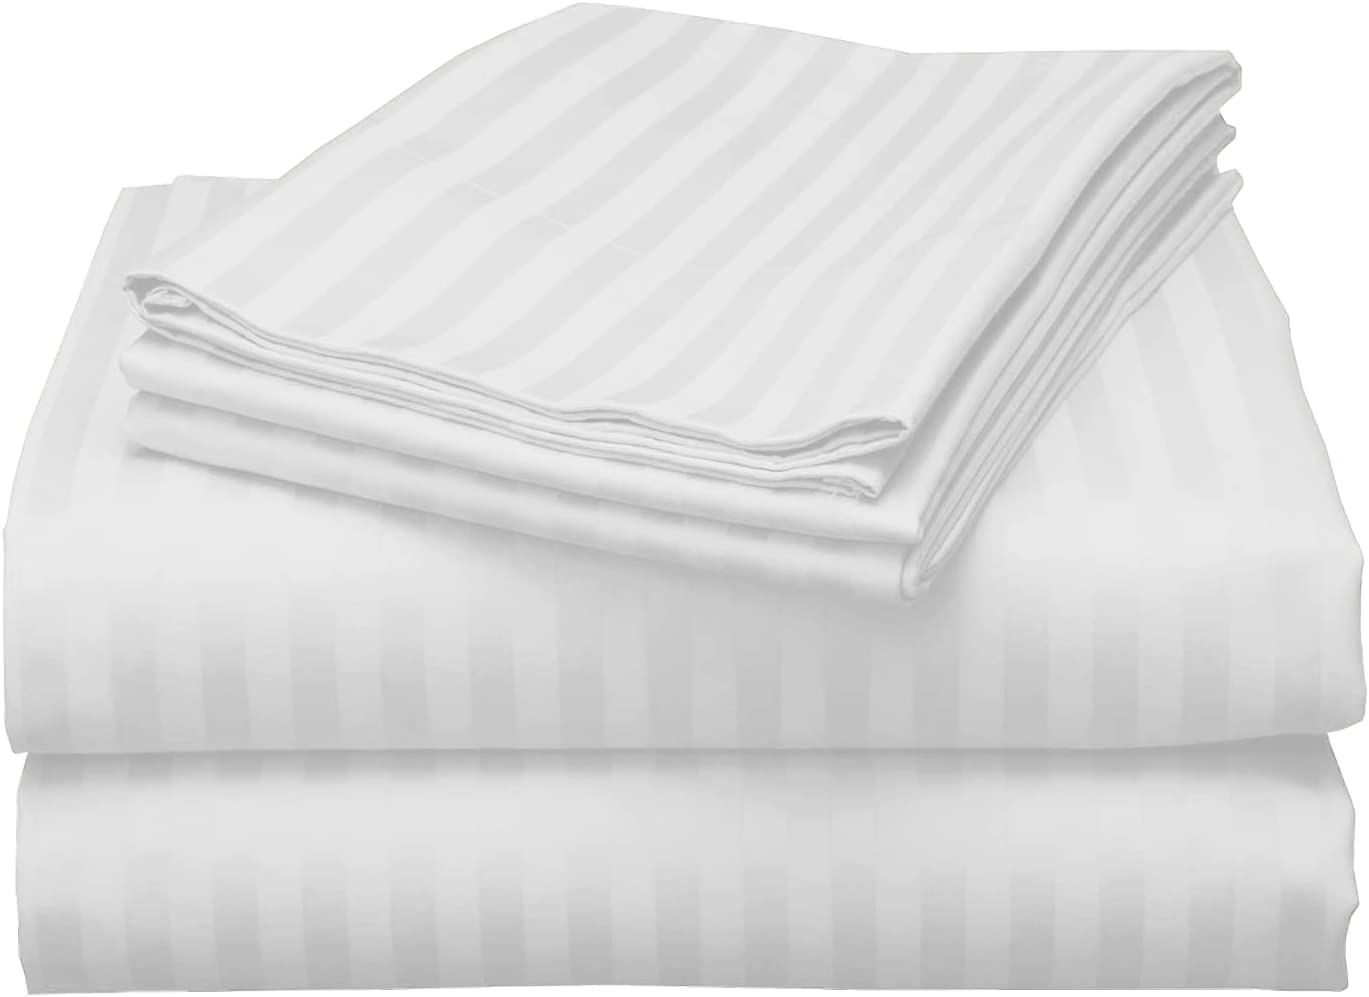 At the price of surprise Sheet Set Full Size 500 sale Count Egyptian 4 Piece Thread